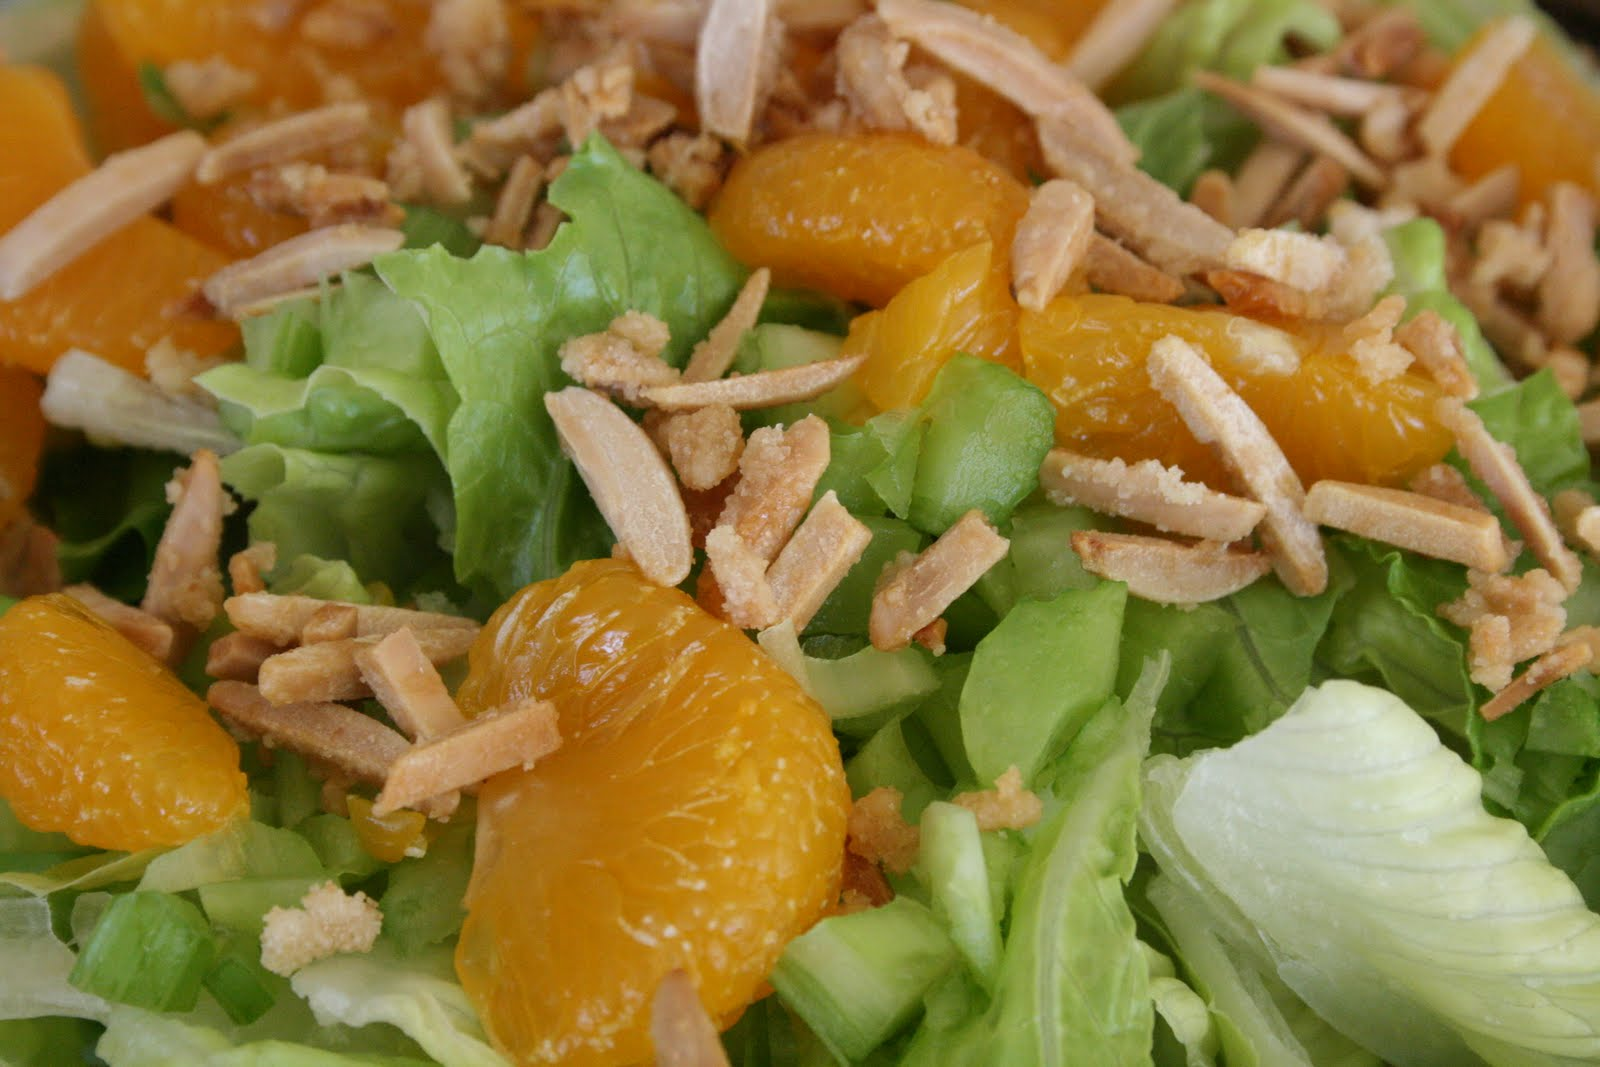 Crisp romaine crumbled bacon mandarin orange segments toasted almonds and a homemade vinaigrette make this green salad a standout